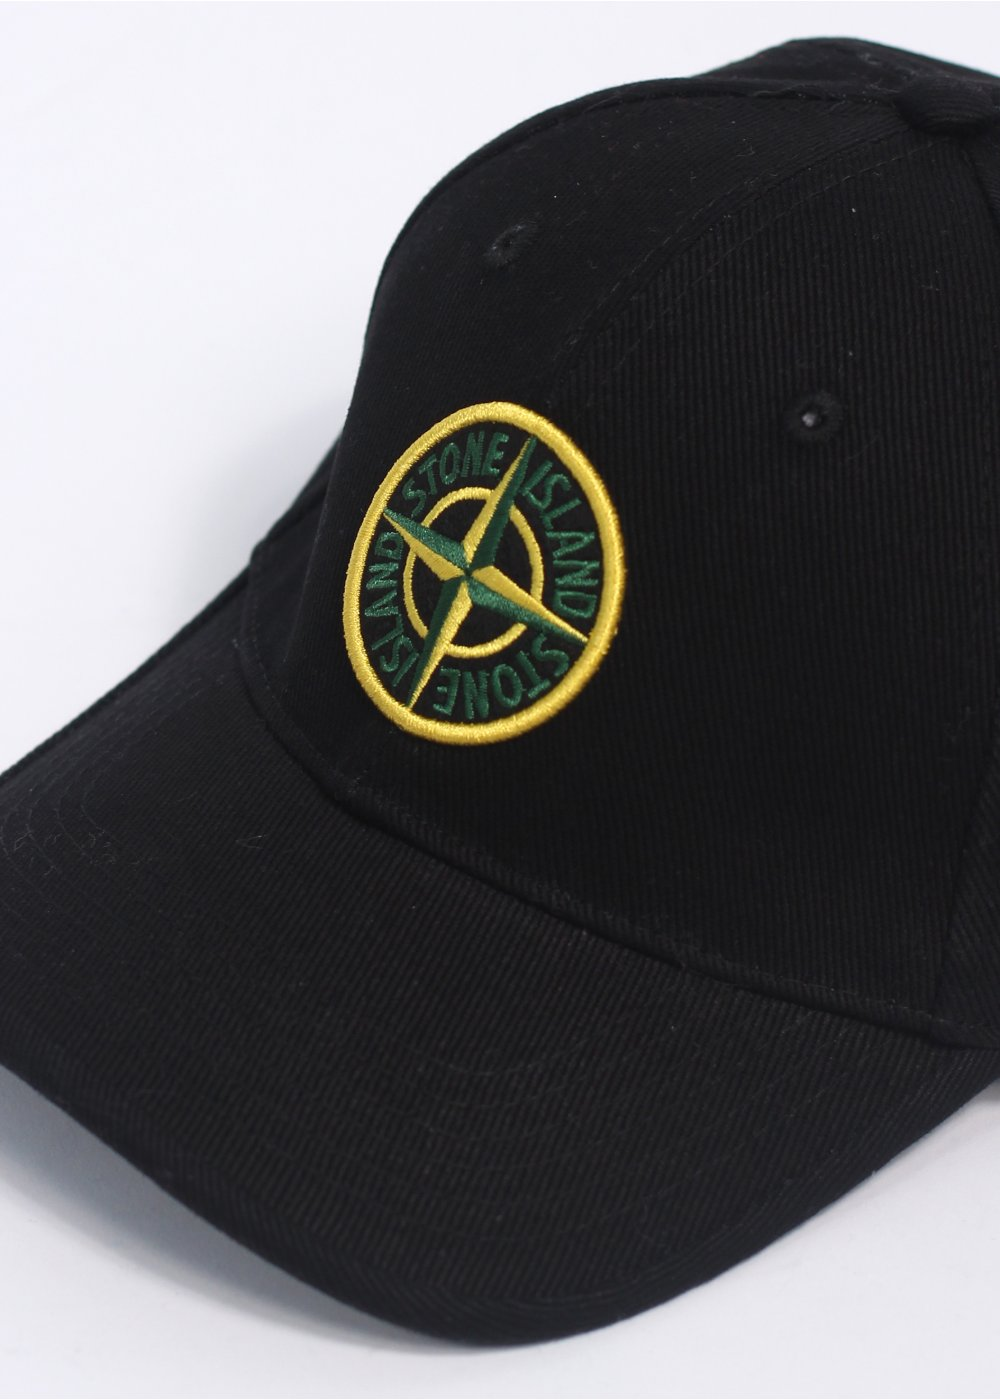 stone island logo cap black. Black Bedroom Furniture Sets. Home Design Ideas